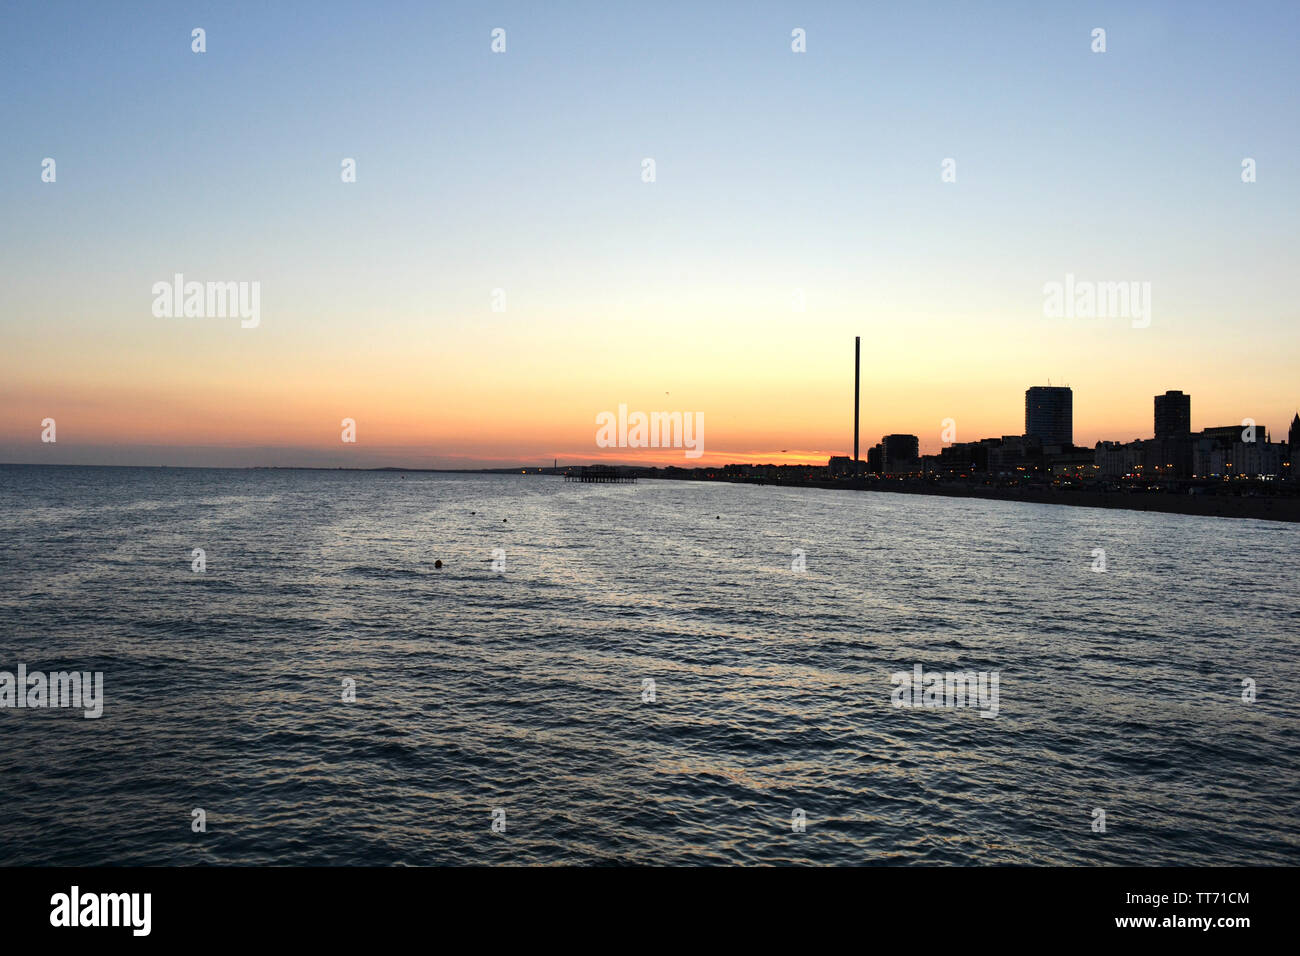 Beautiful panoramic cityscape of Brighton at sunset viewed from the sea. Stock Photo